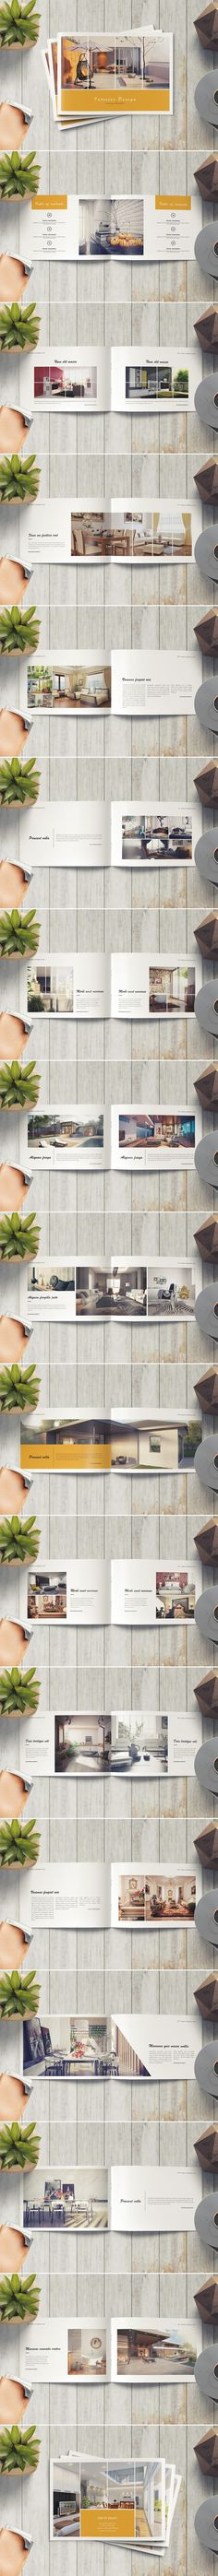 Minimal Product Catalog / Brochure on Behance